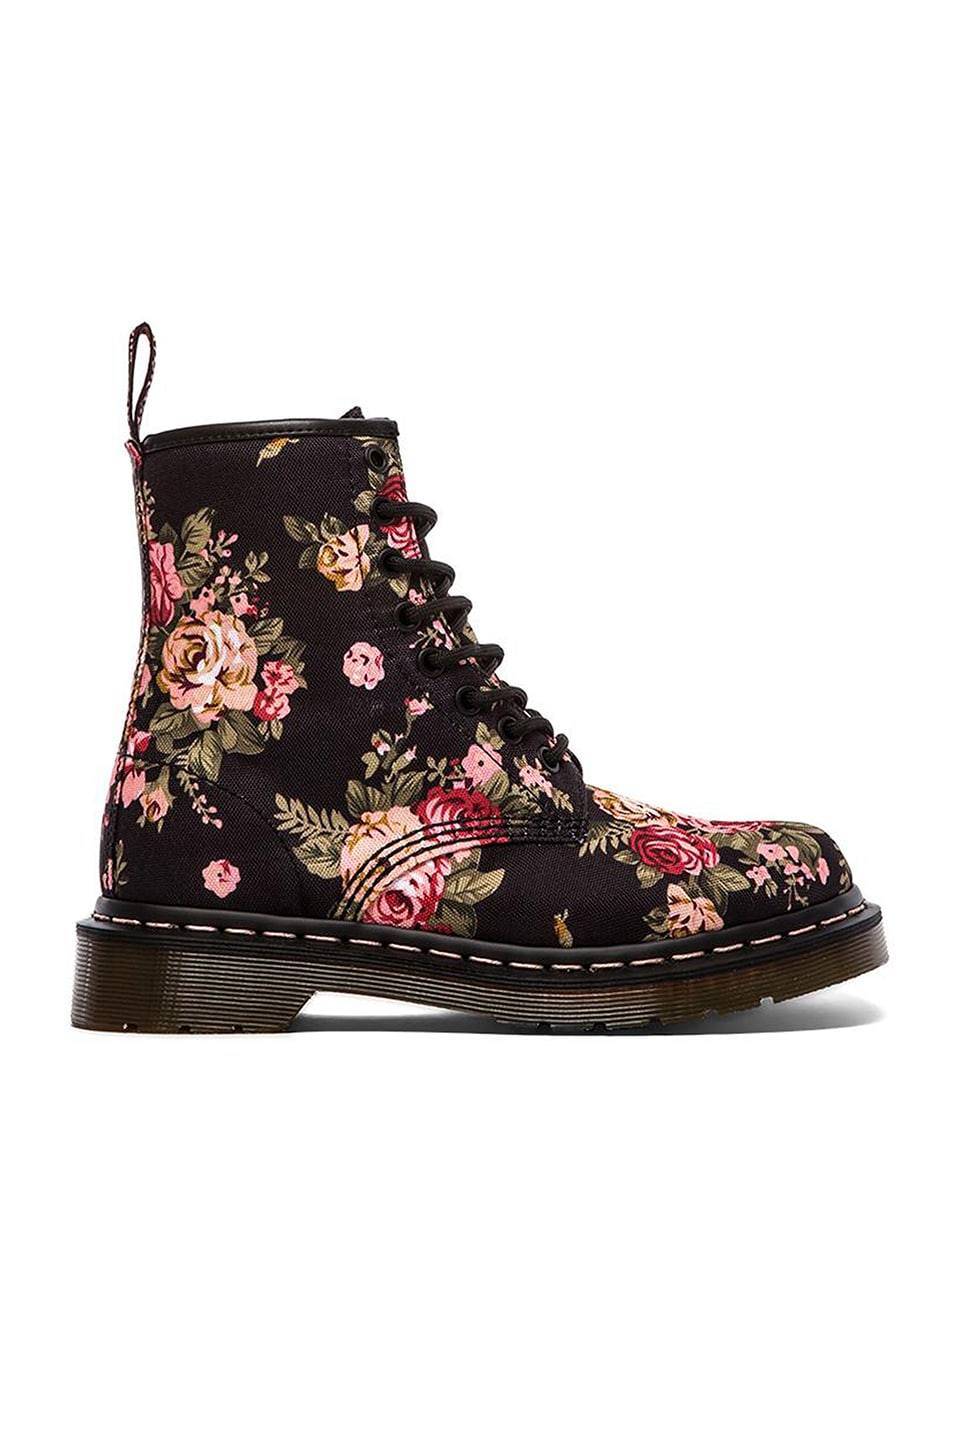 Dr. Martens Print 8 Eye Boot in Black Victorian Flowers